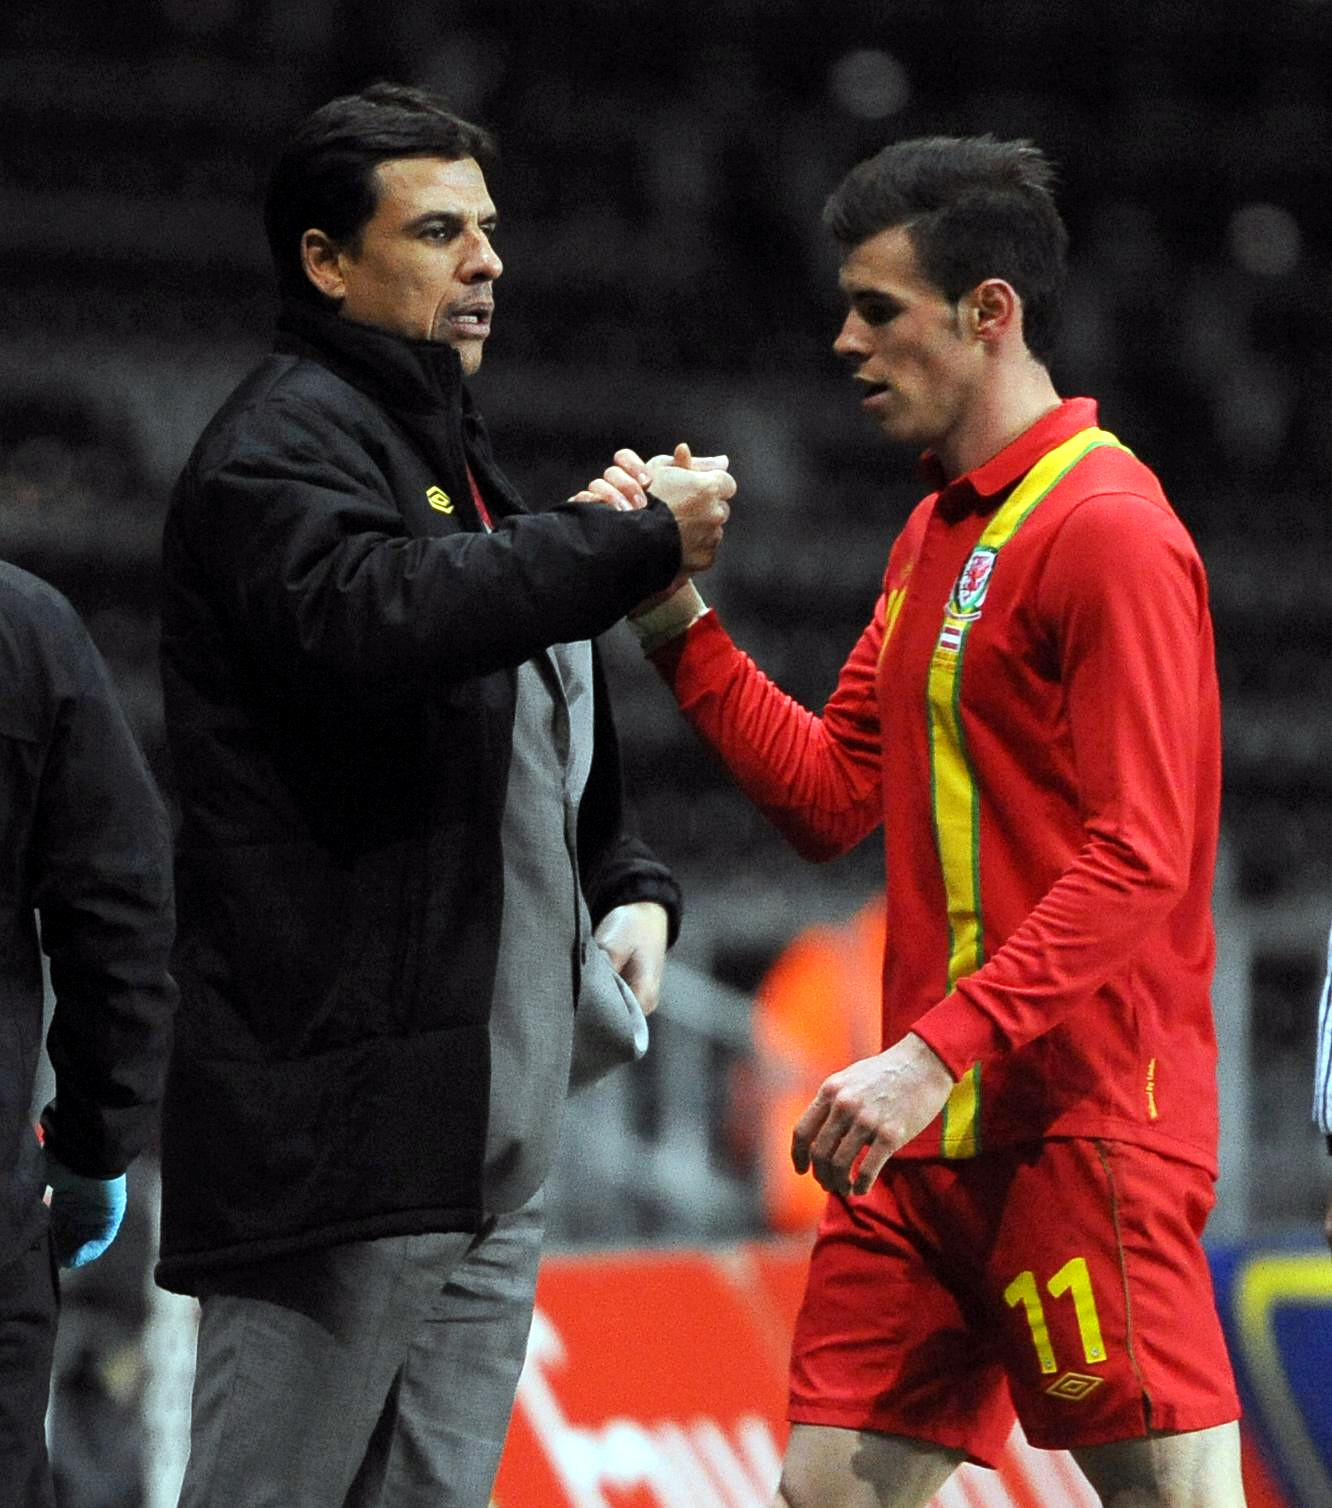 GOOD DRAW: Chris Coleman and Gareth Bale